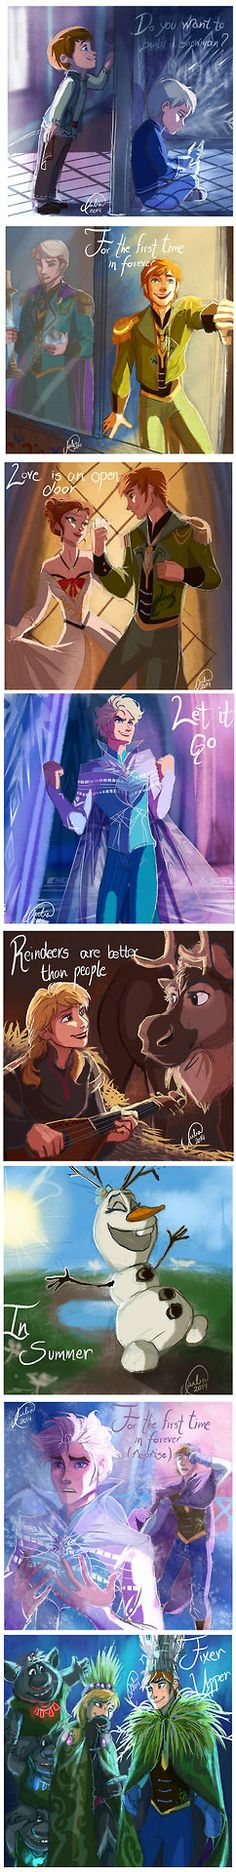 Frozen genderbend ITS JUST SOOOOOOOOOOO COOL